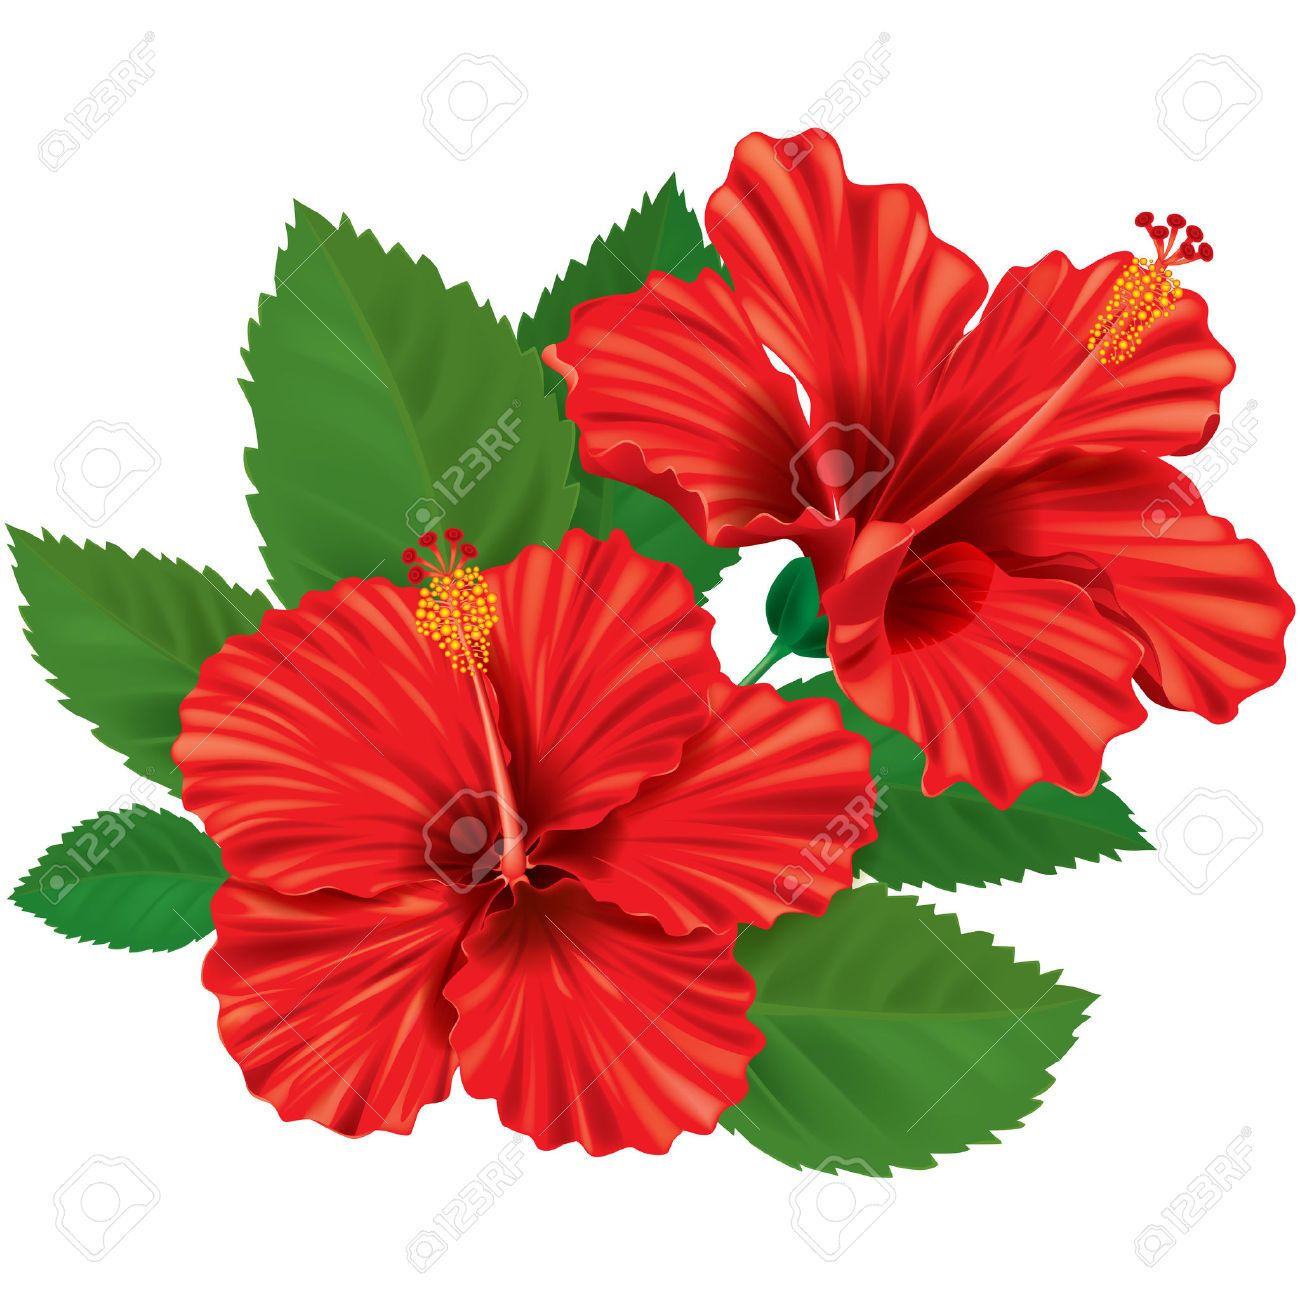 Hibiscus Flower Close Up In Shades Of Red And Pink Hibiscus Flower Close Up Flowers Photography Wallpaper Spring Flowers Photography